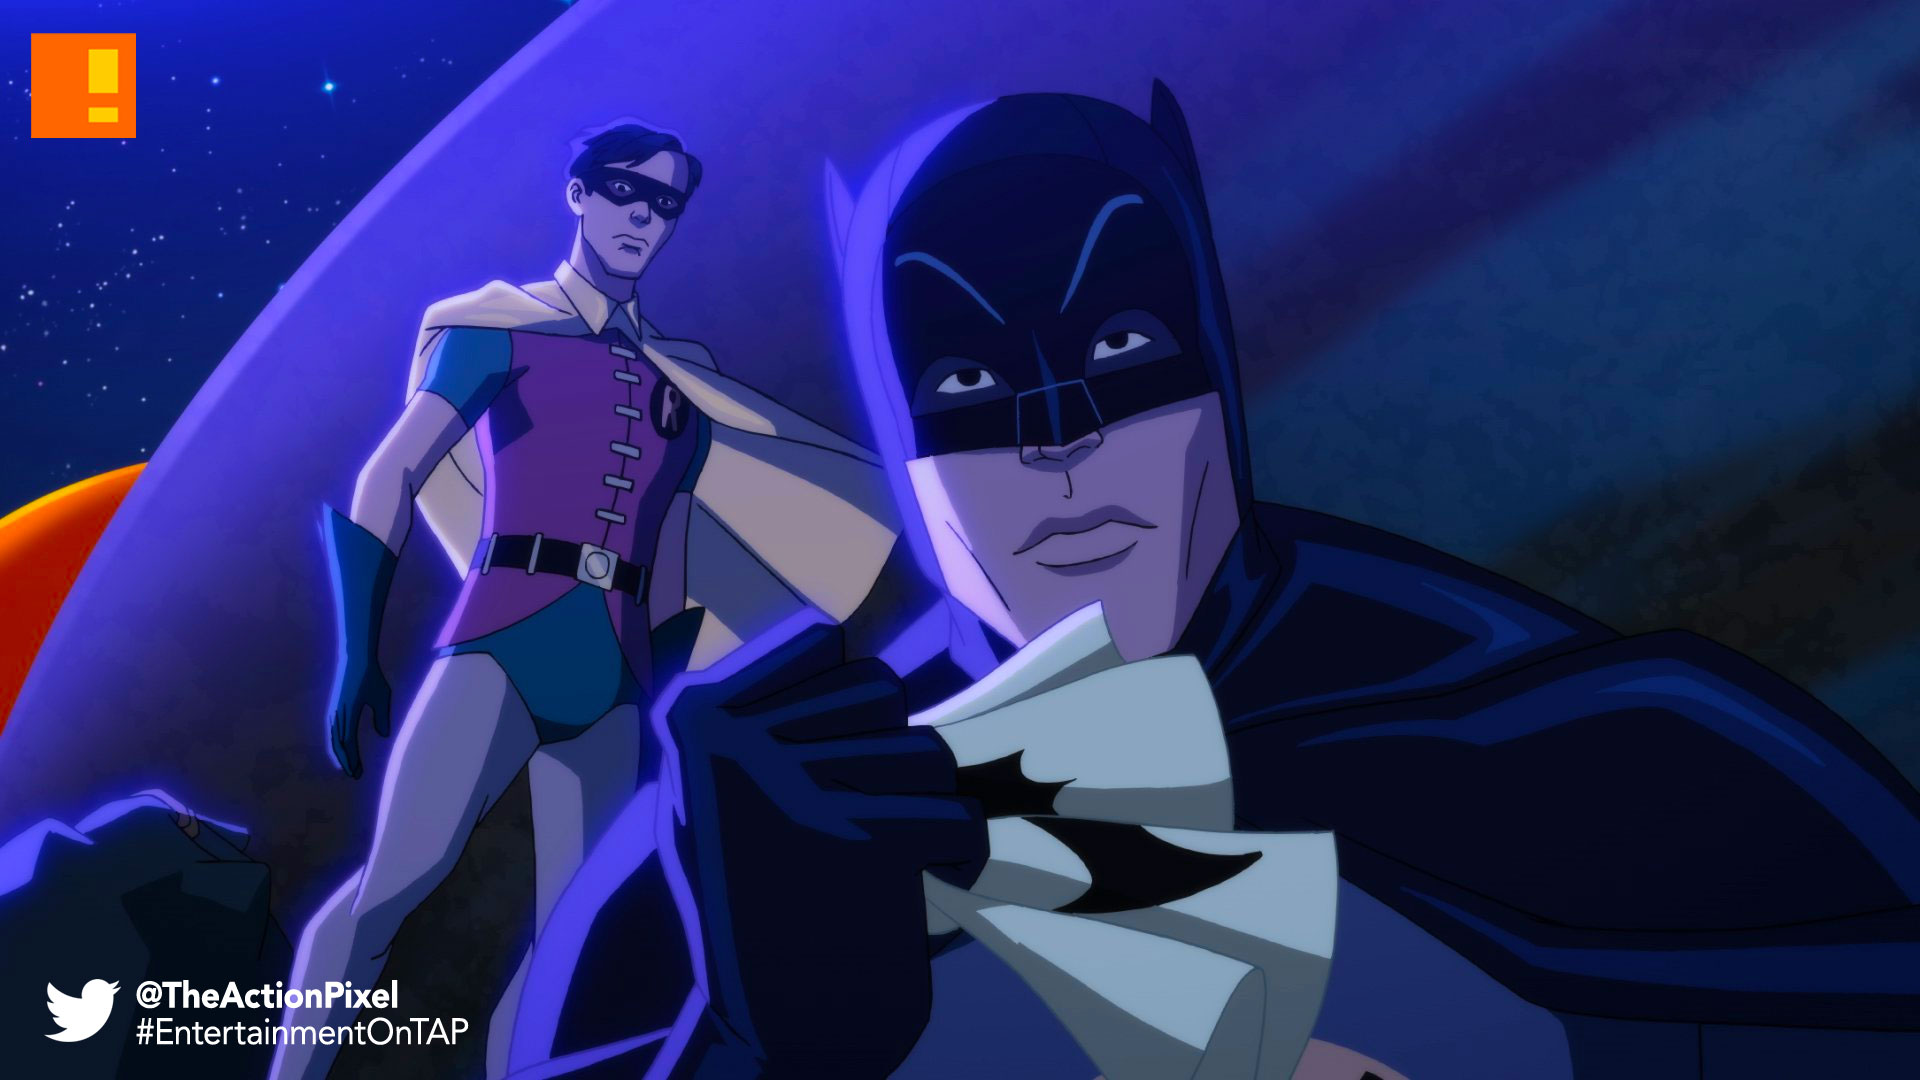 batman: return of the caped crusaders, caped crusaders, batman, dc comics, warner bros. wb animation, animation, robin, adam west, joker, penguin, the riddler, dc comics, dc, gotham, nycc, new york comic con,